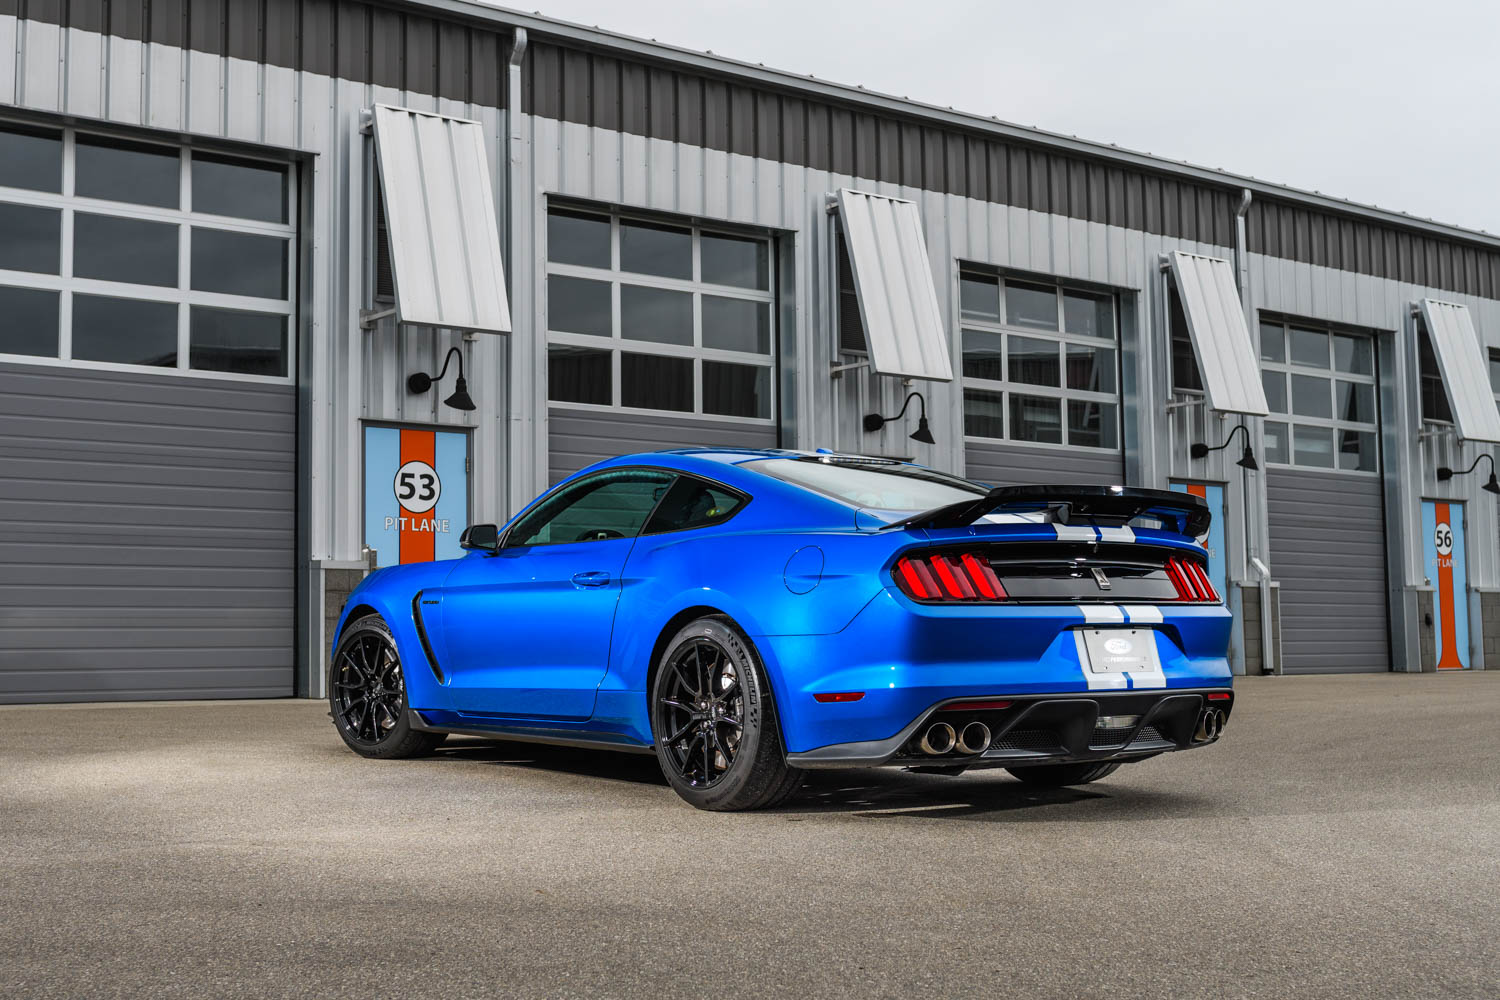 2019 Ford Mustang Shelby GT350 rear 3/4